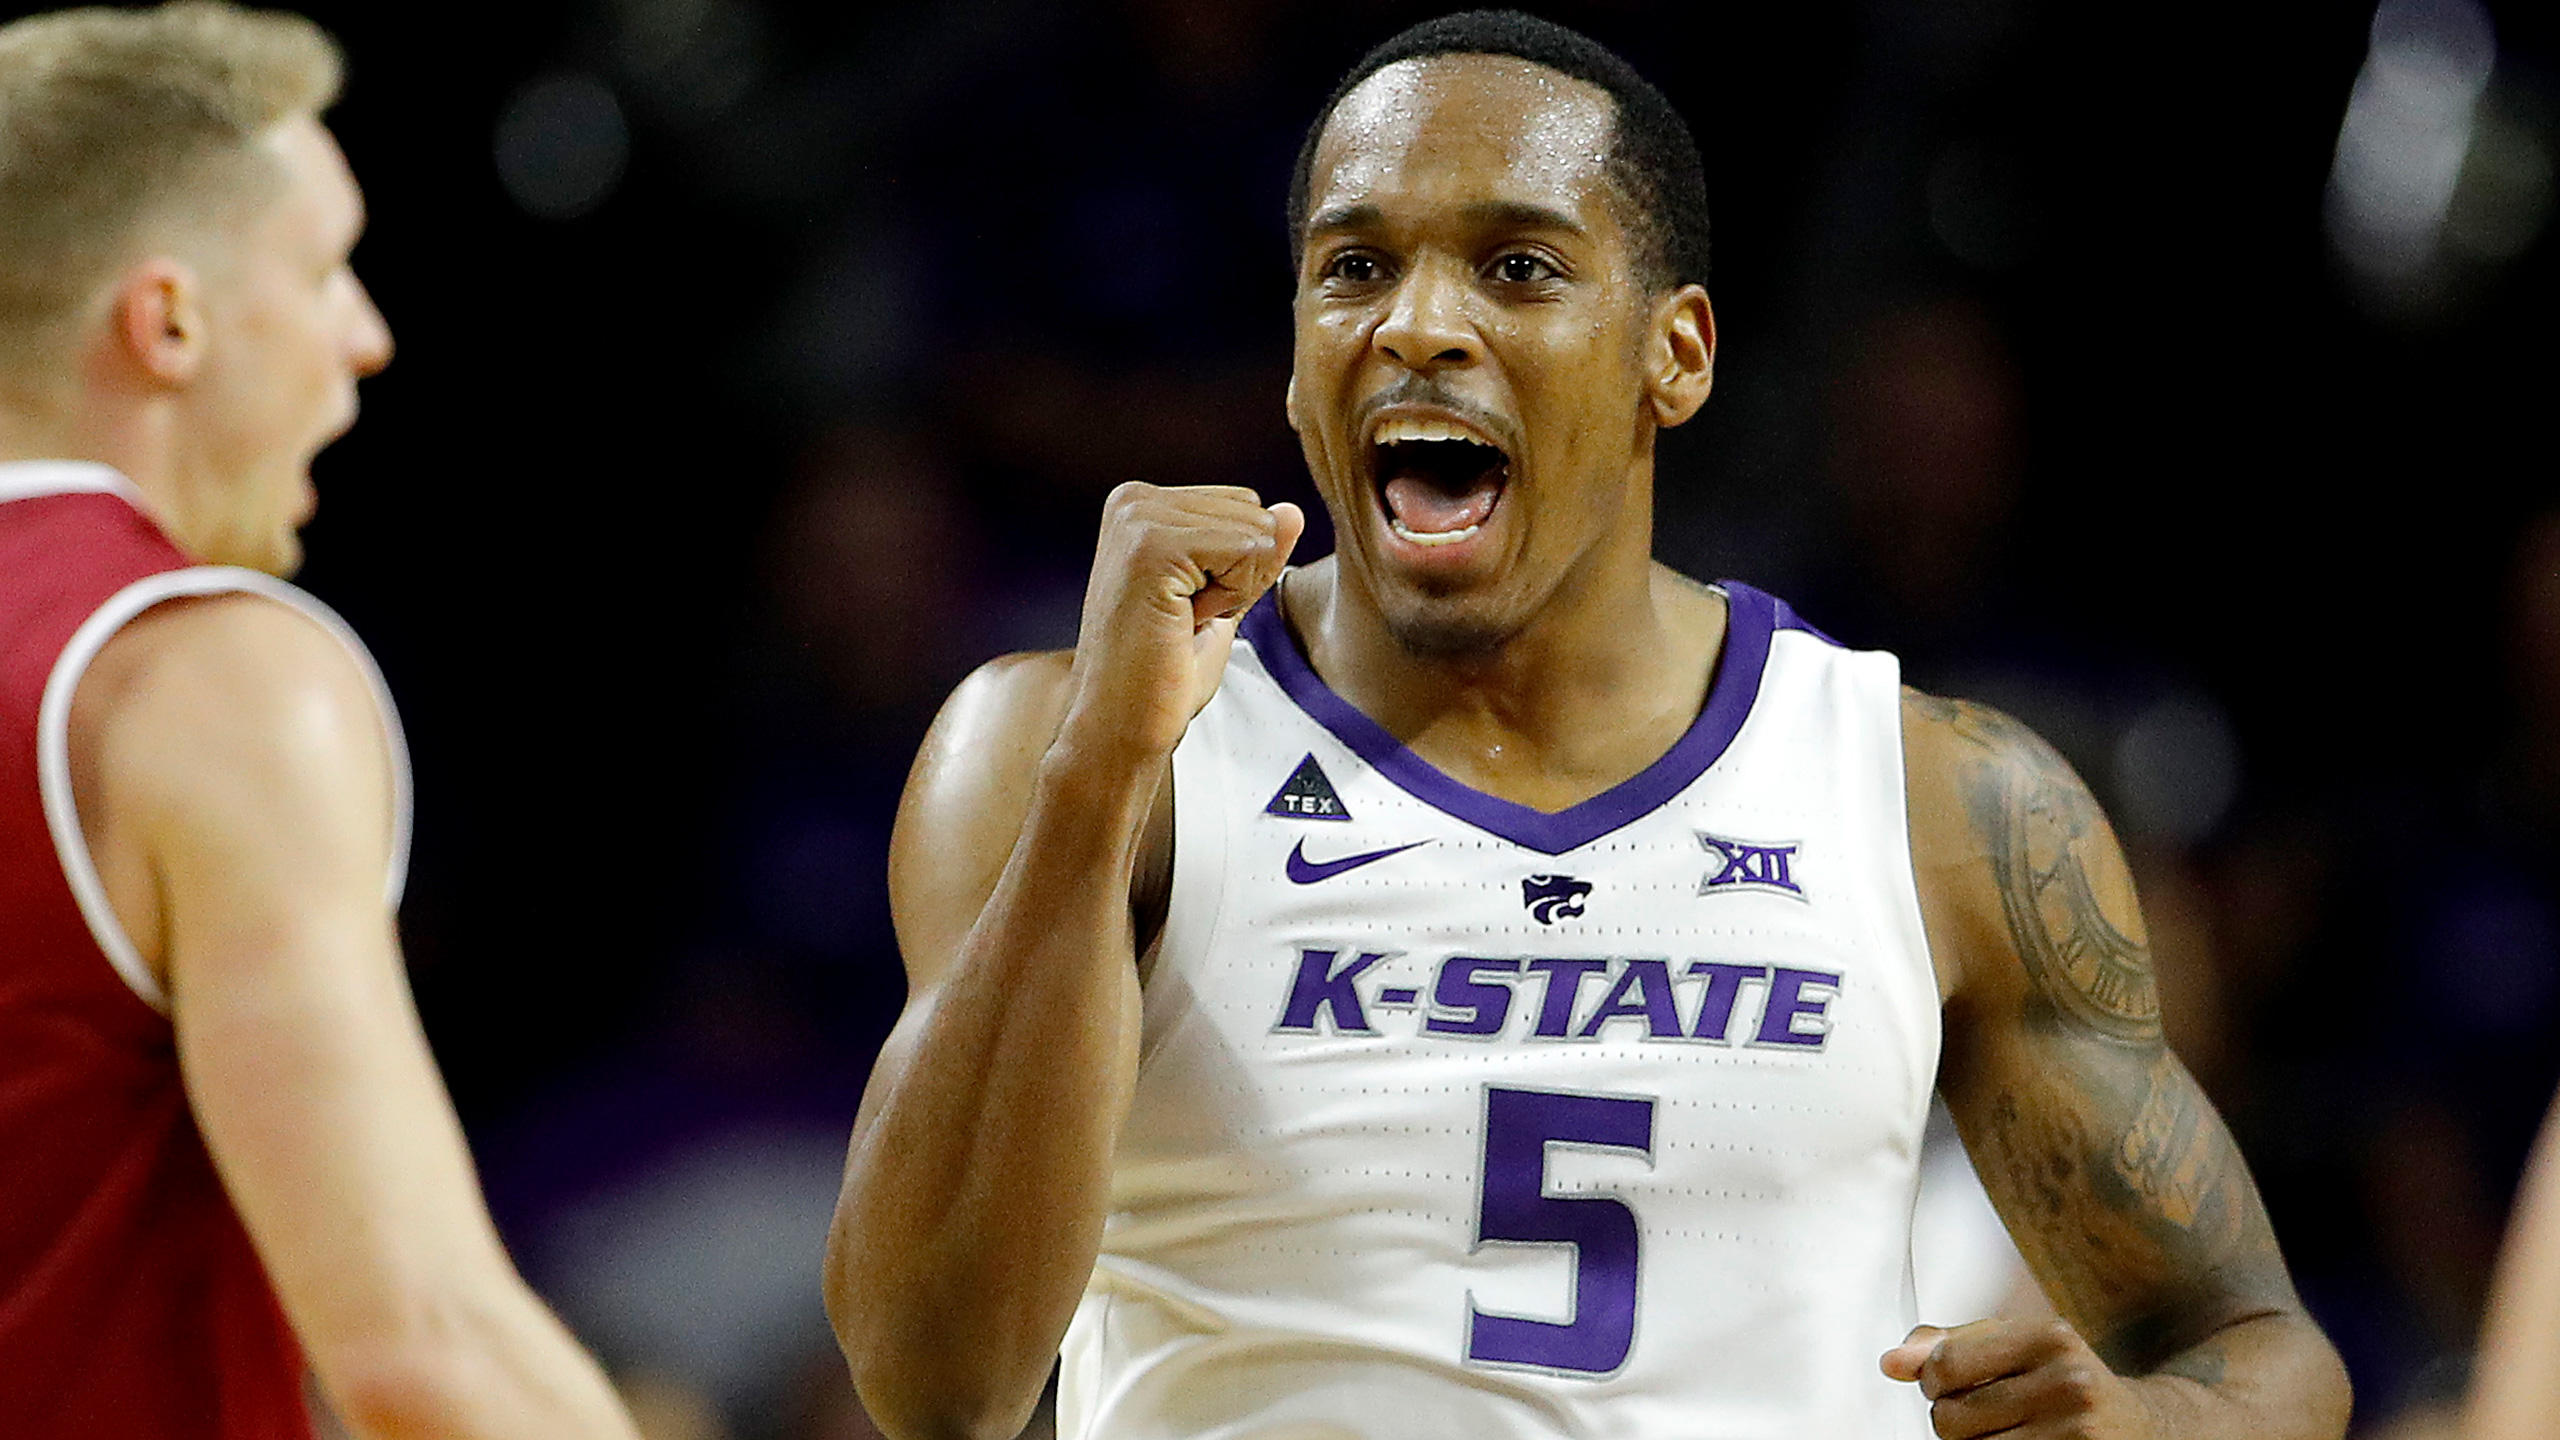 Georgia State vs. #25 Kansas State (M Basketball)